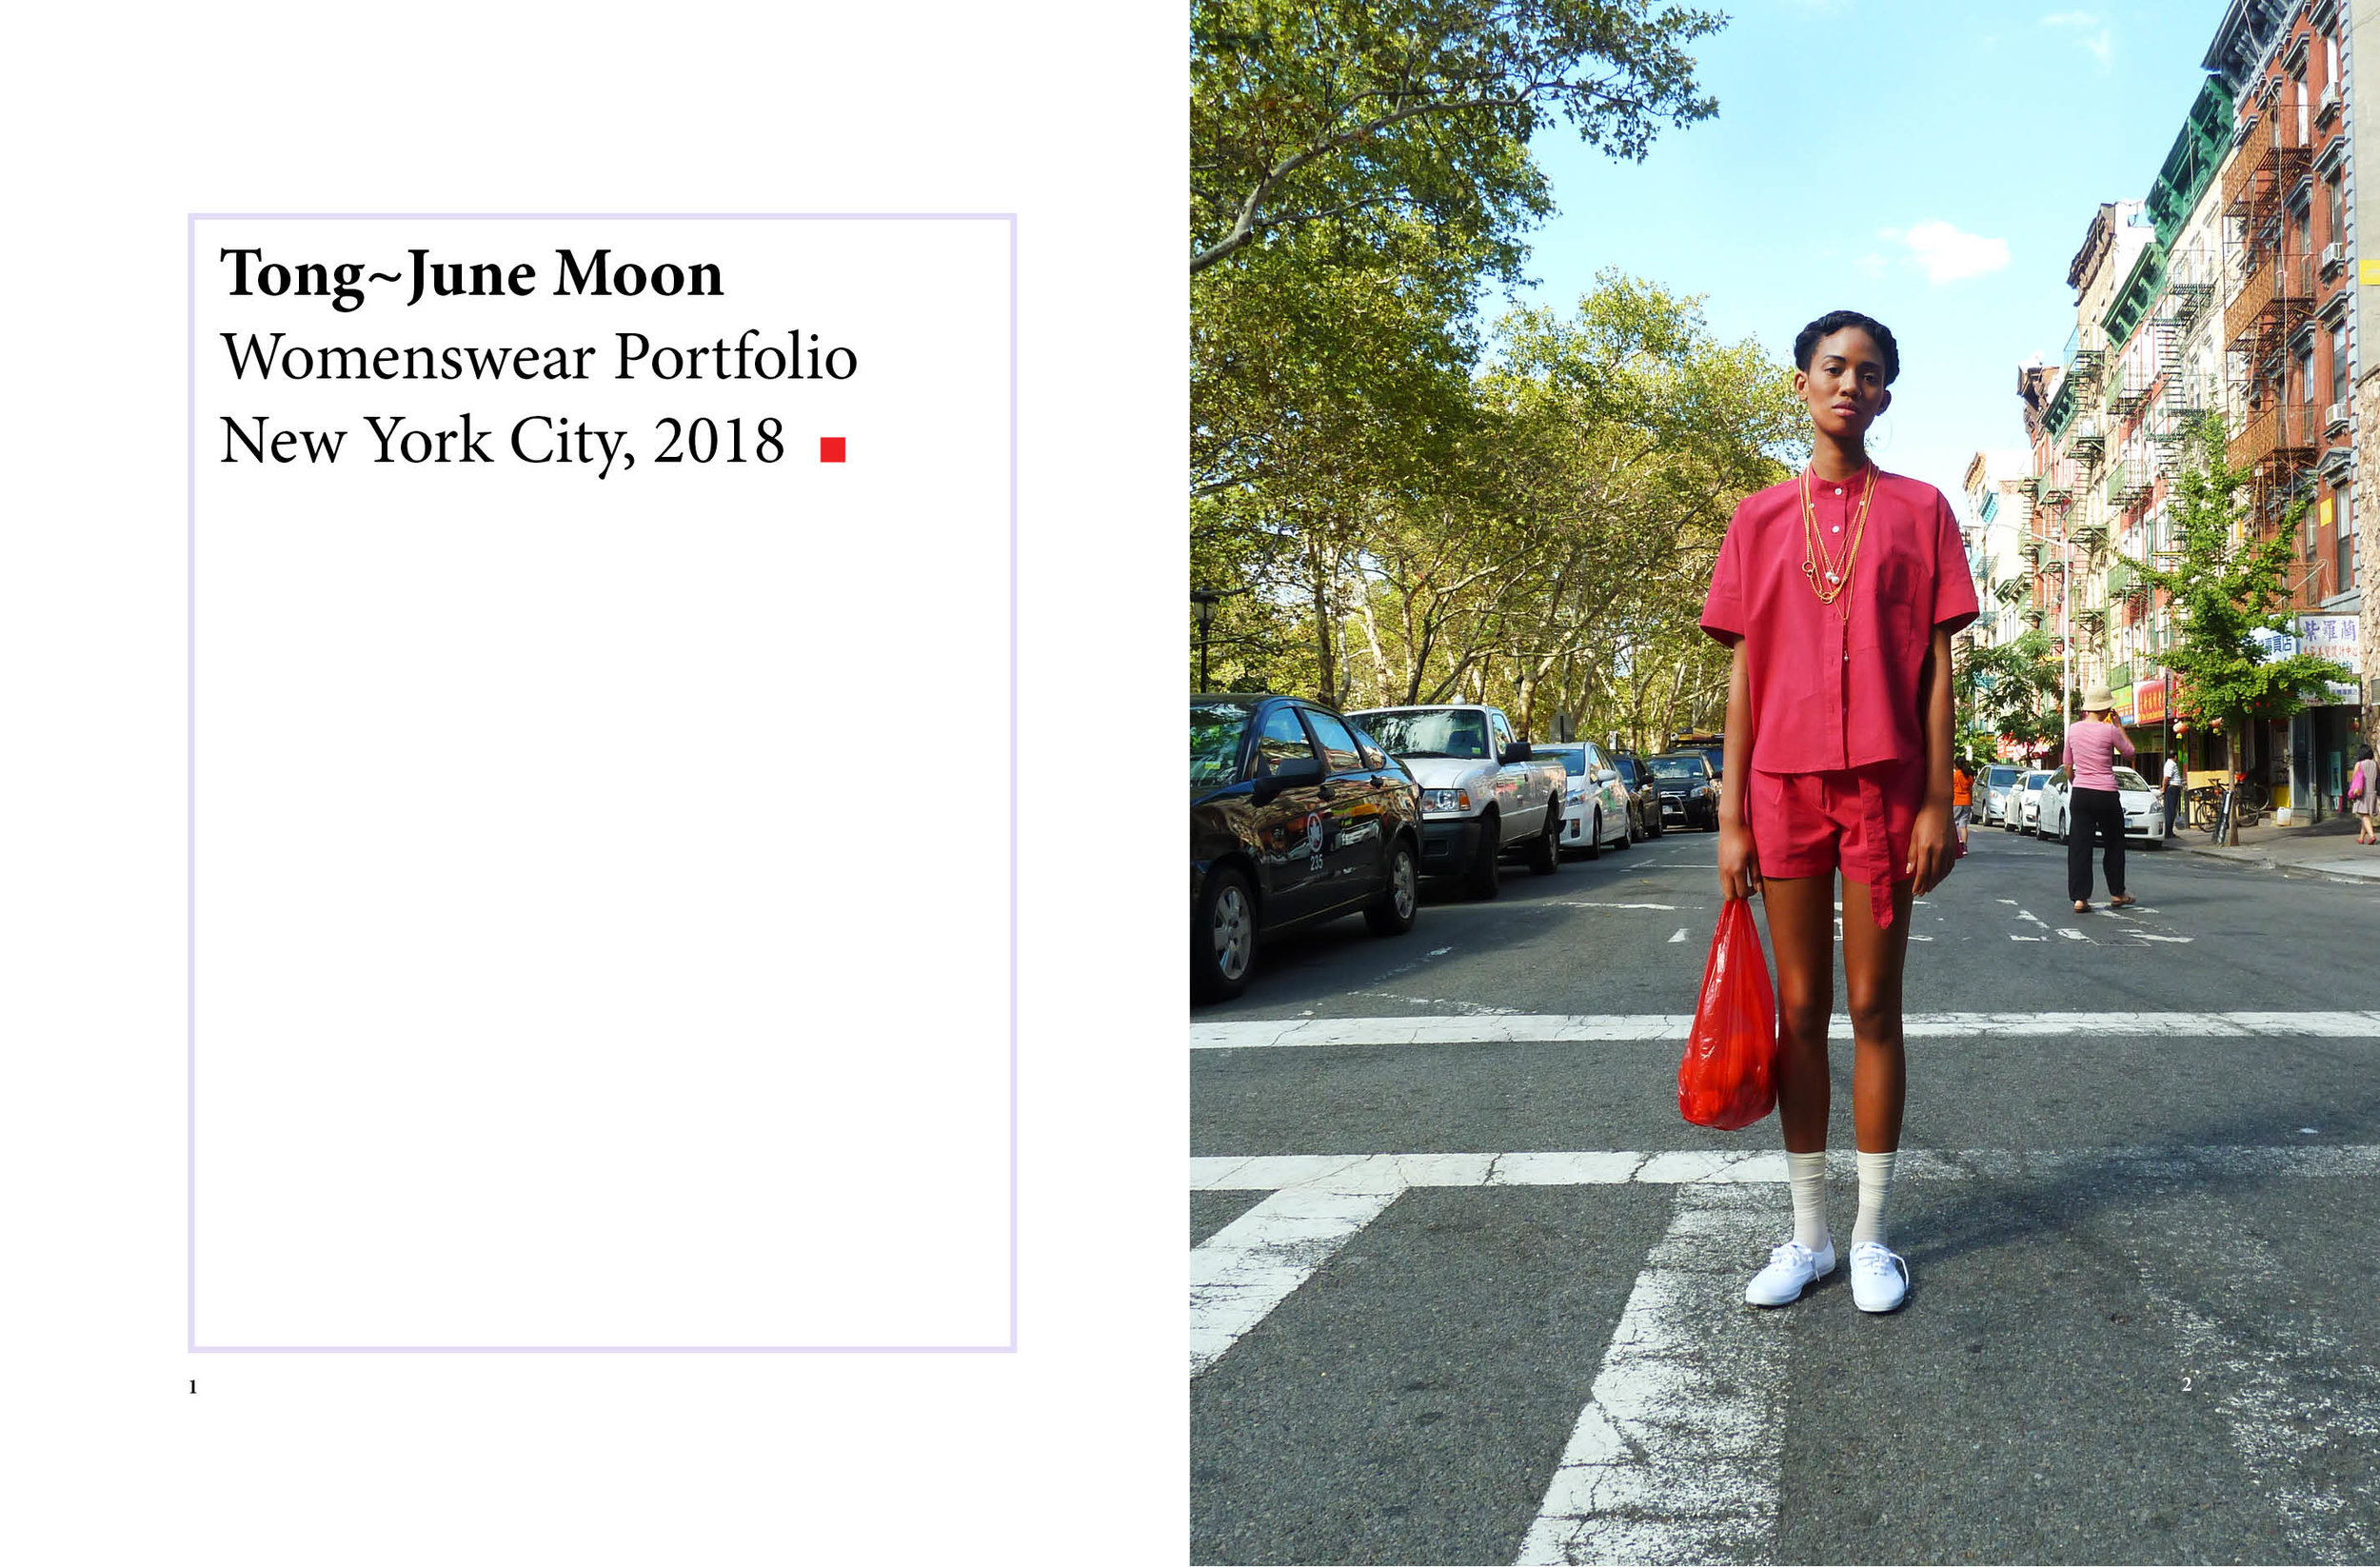 Tong-June Moon Portfolio_Sept 2018_R2.jpg